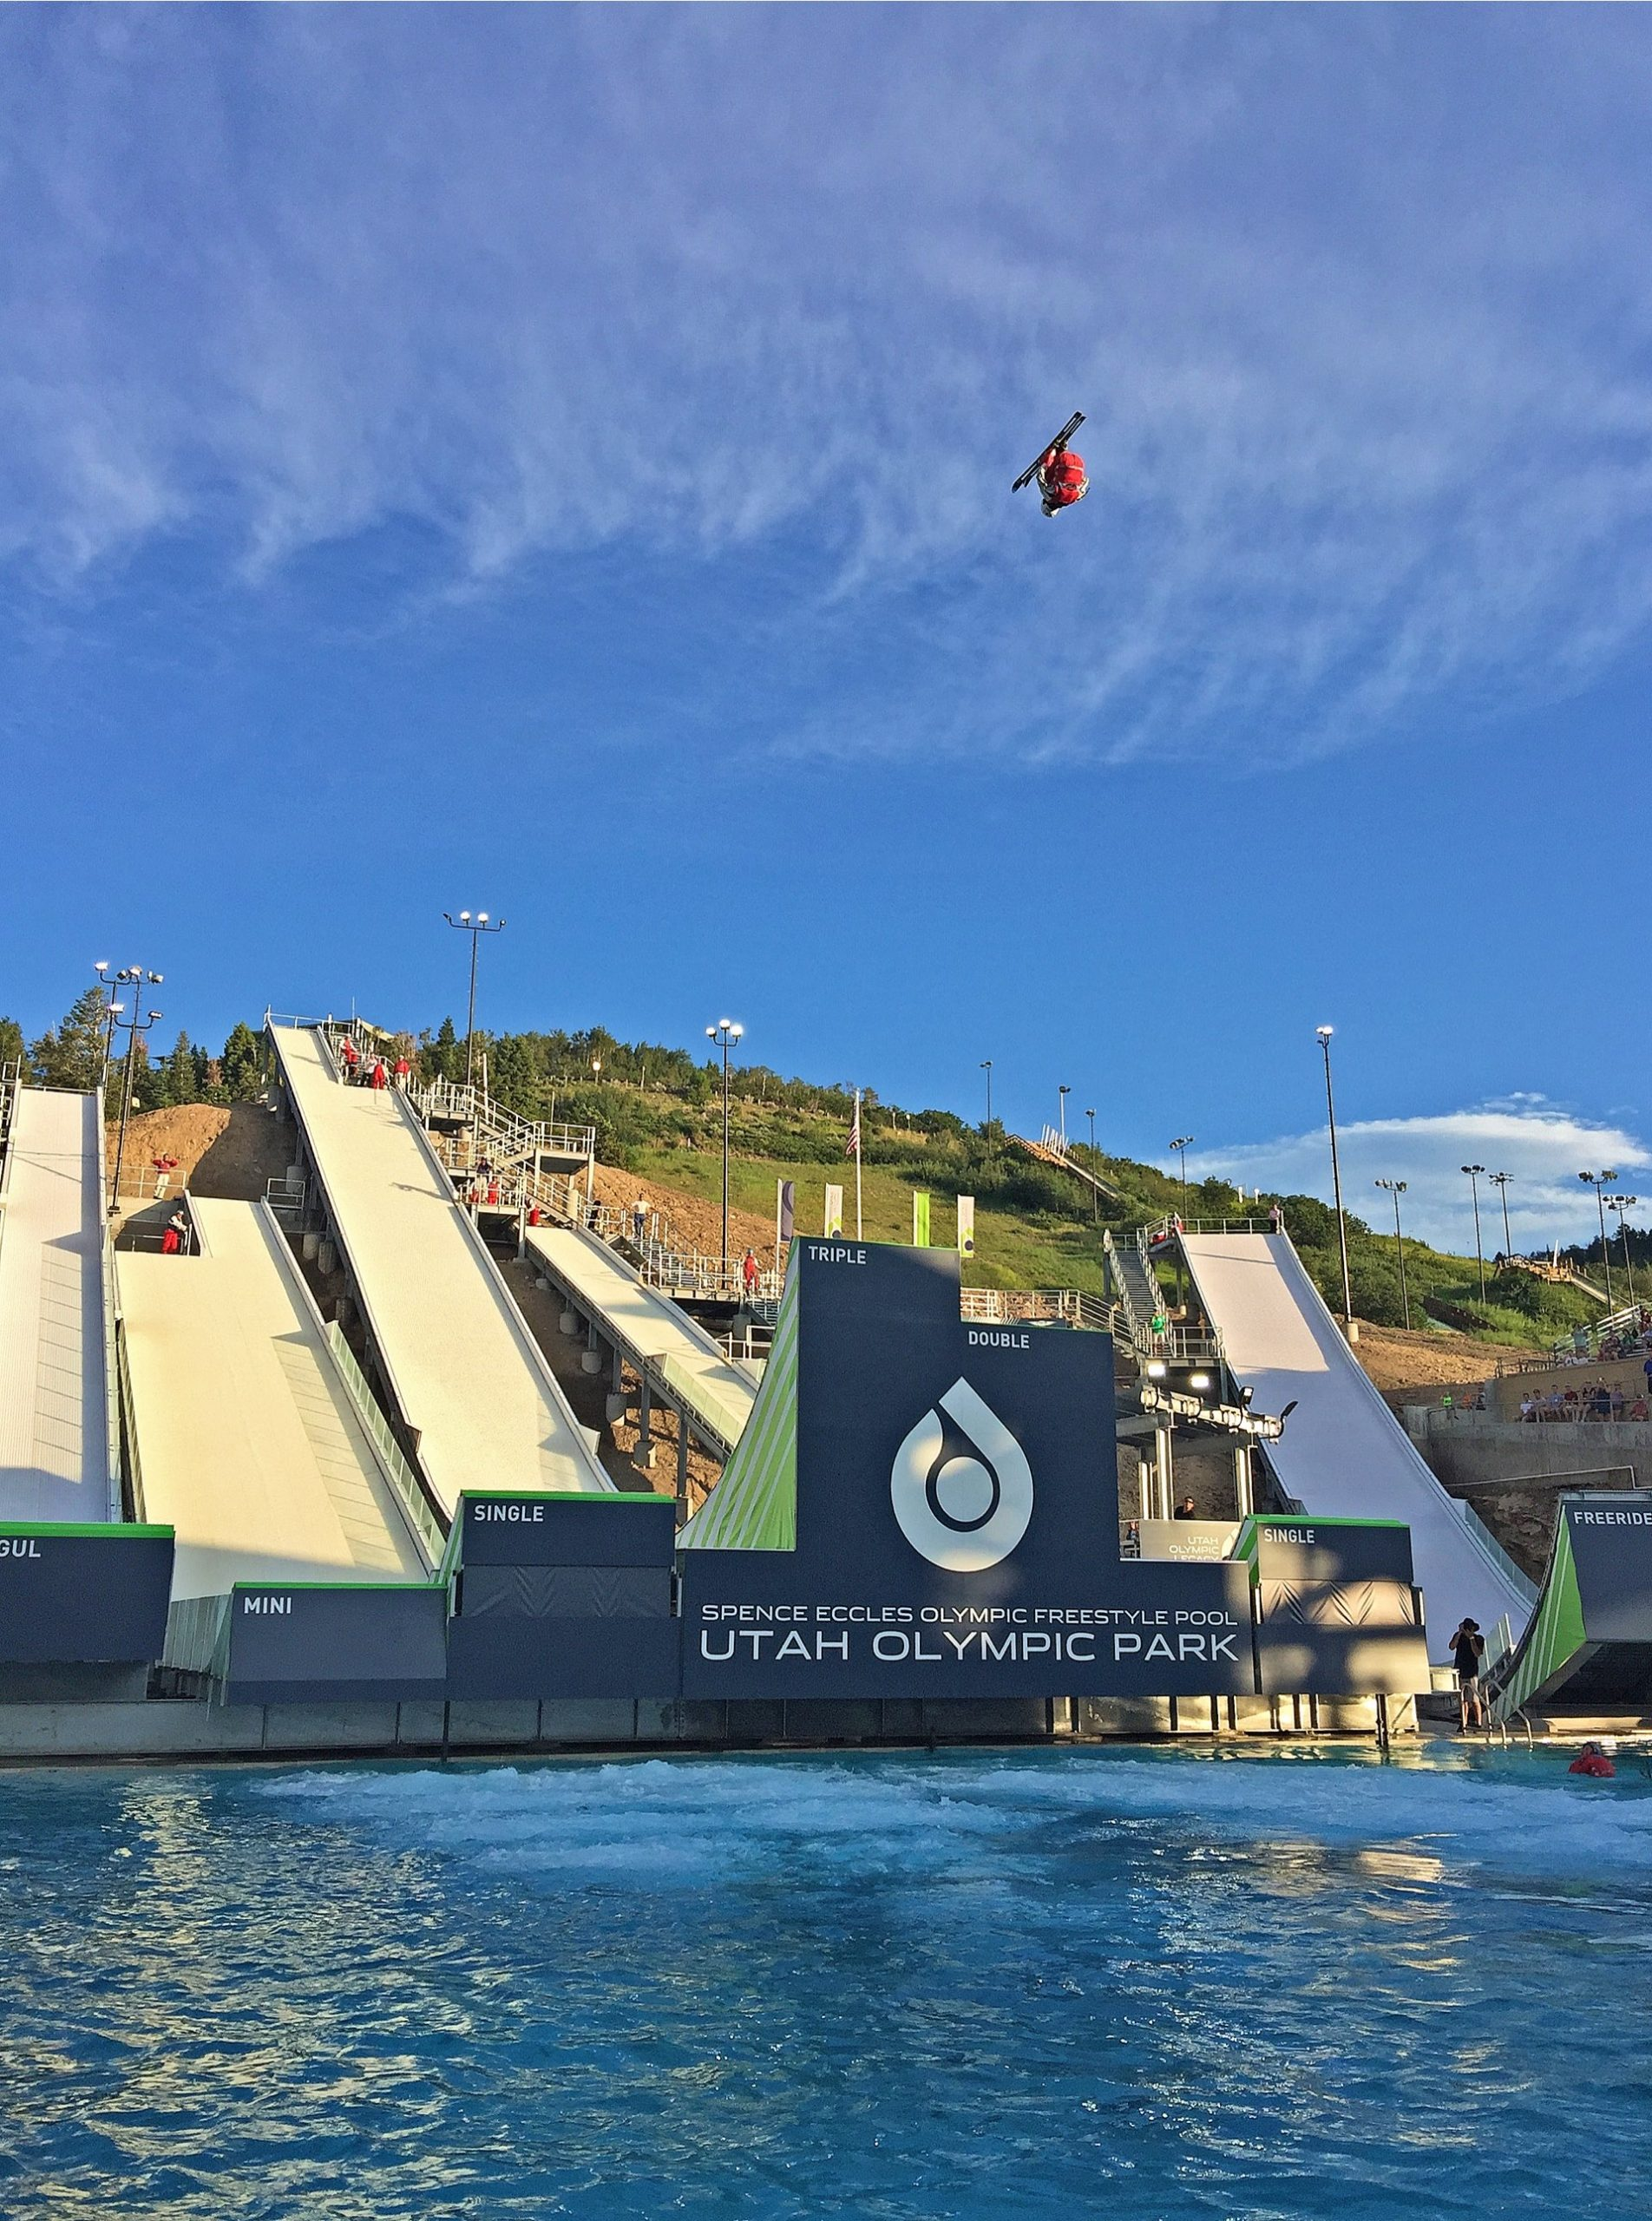 Aerial skier at Utah Olympic Park Water Jumps, Sport & Recreation architectural design by Elliott Workgroup